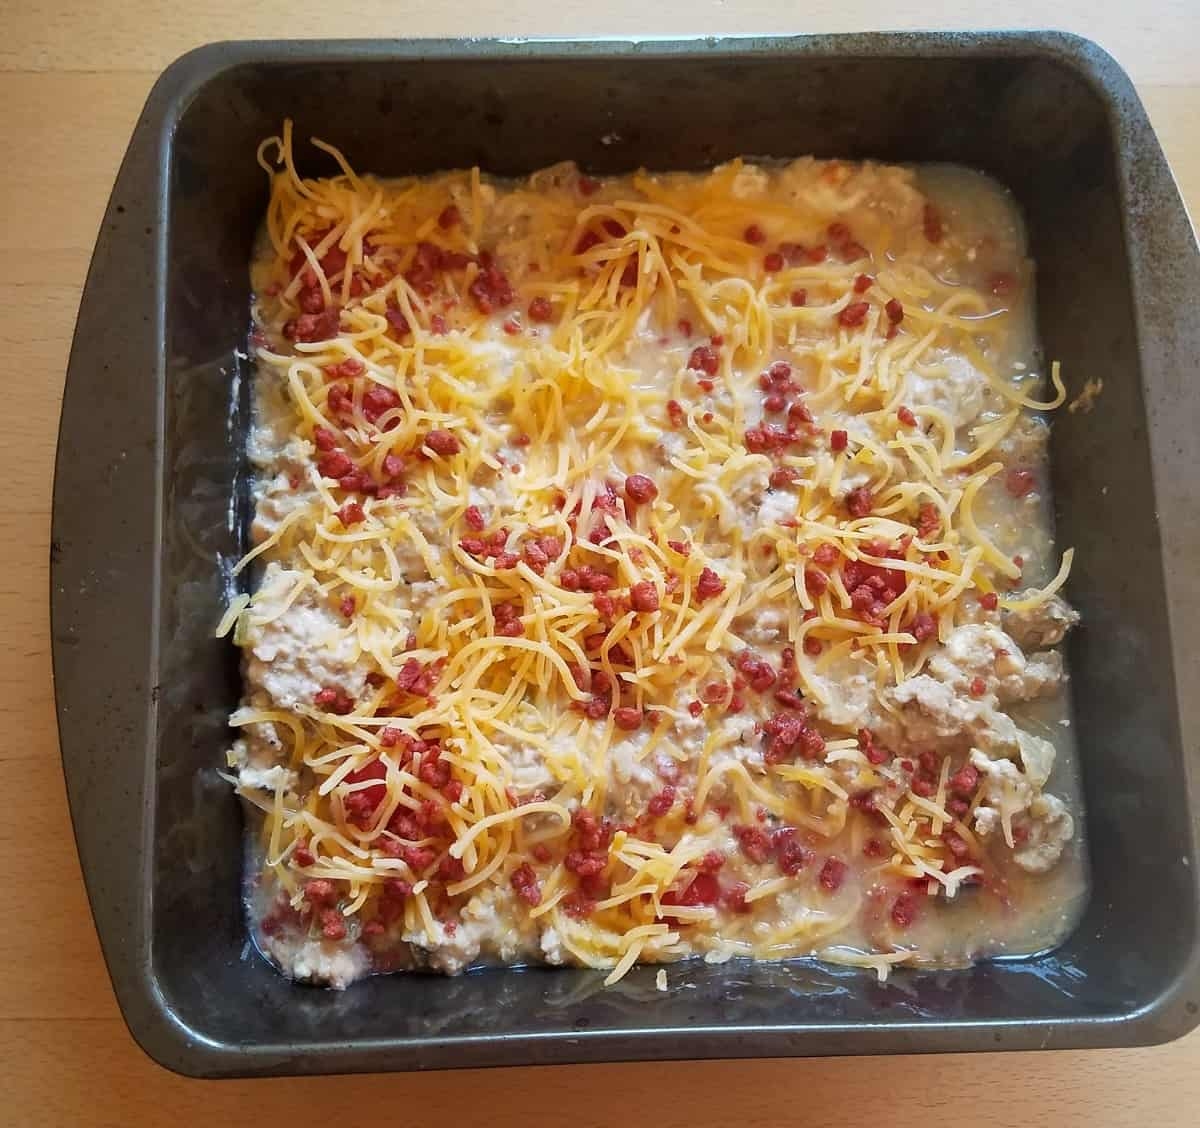 Unbaked cheeseburger casserole topped with shredded cheese and bacon bits in baking dish.